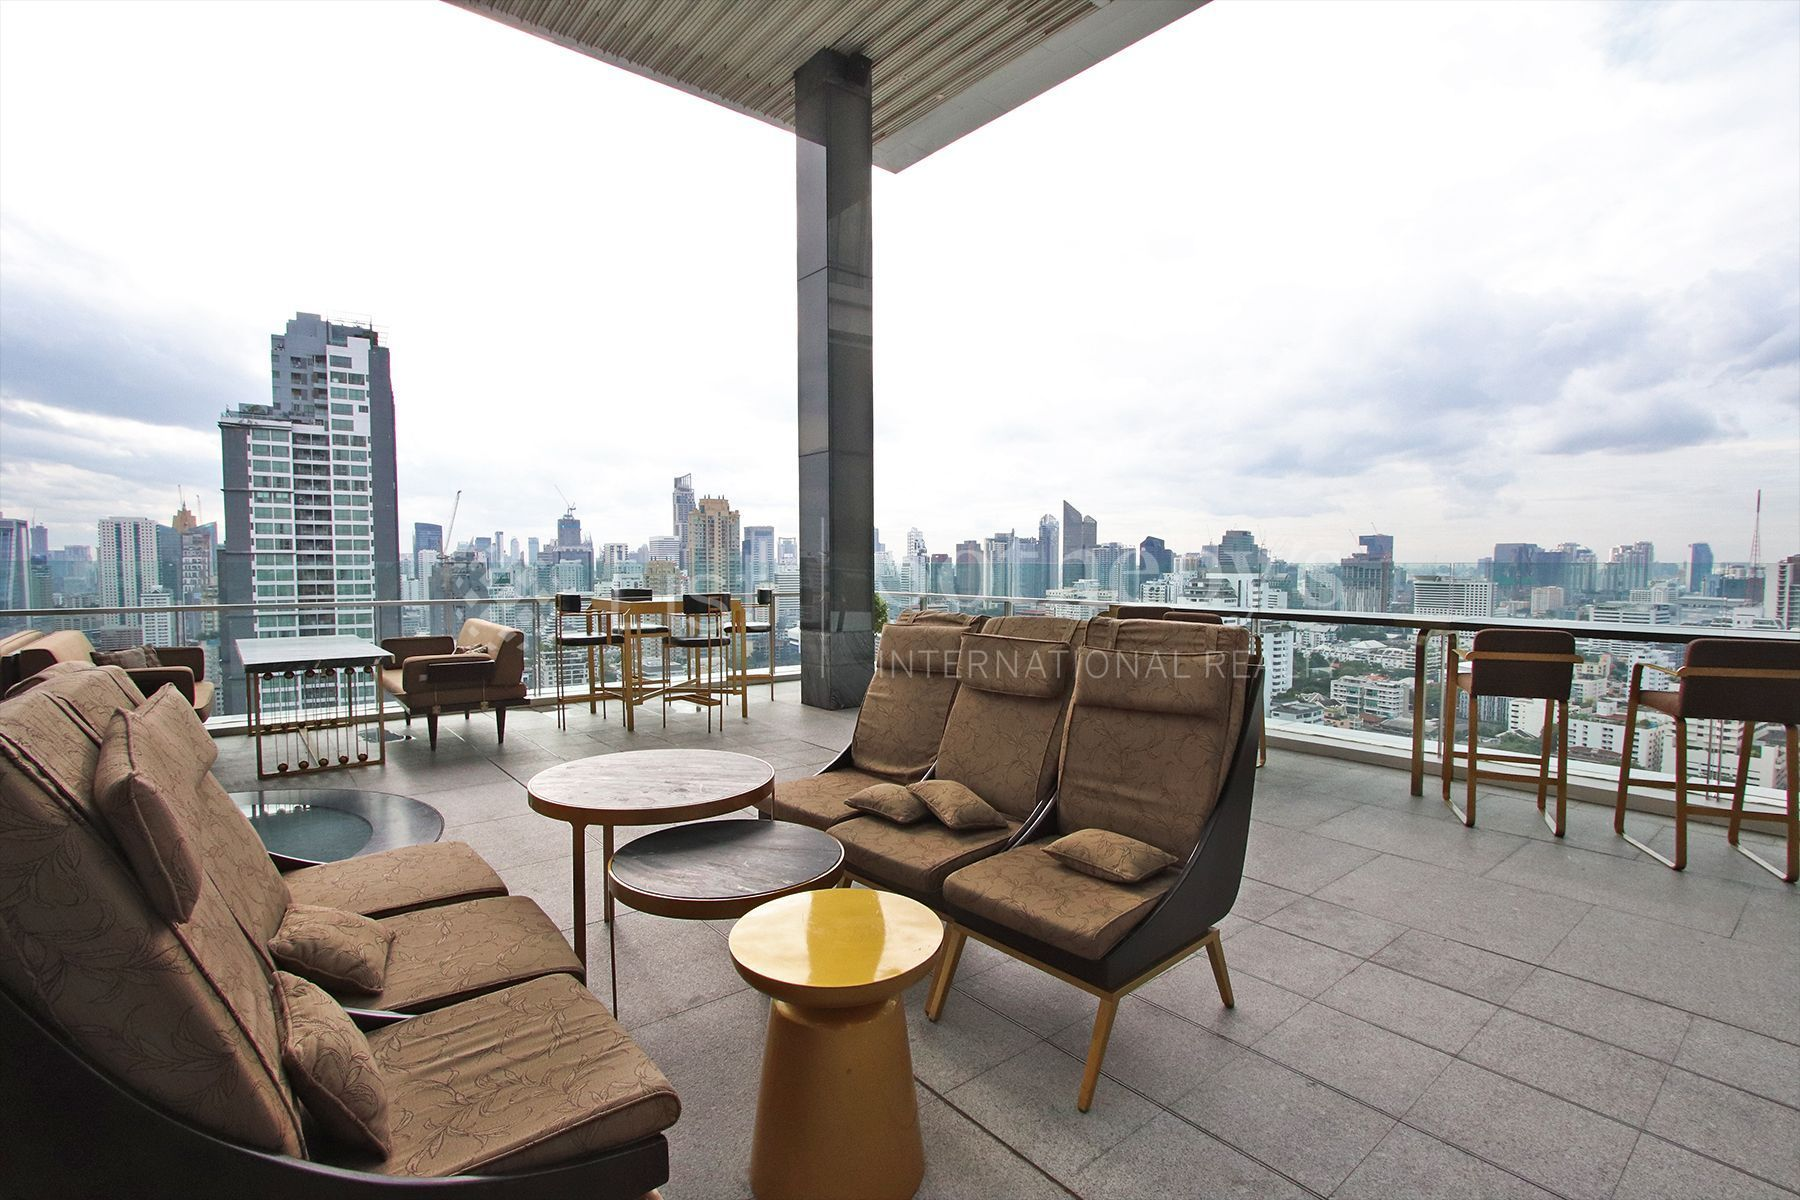 the-pillars-executive-one-bedroom-137-pillars-suites-residences-bangkok 31